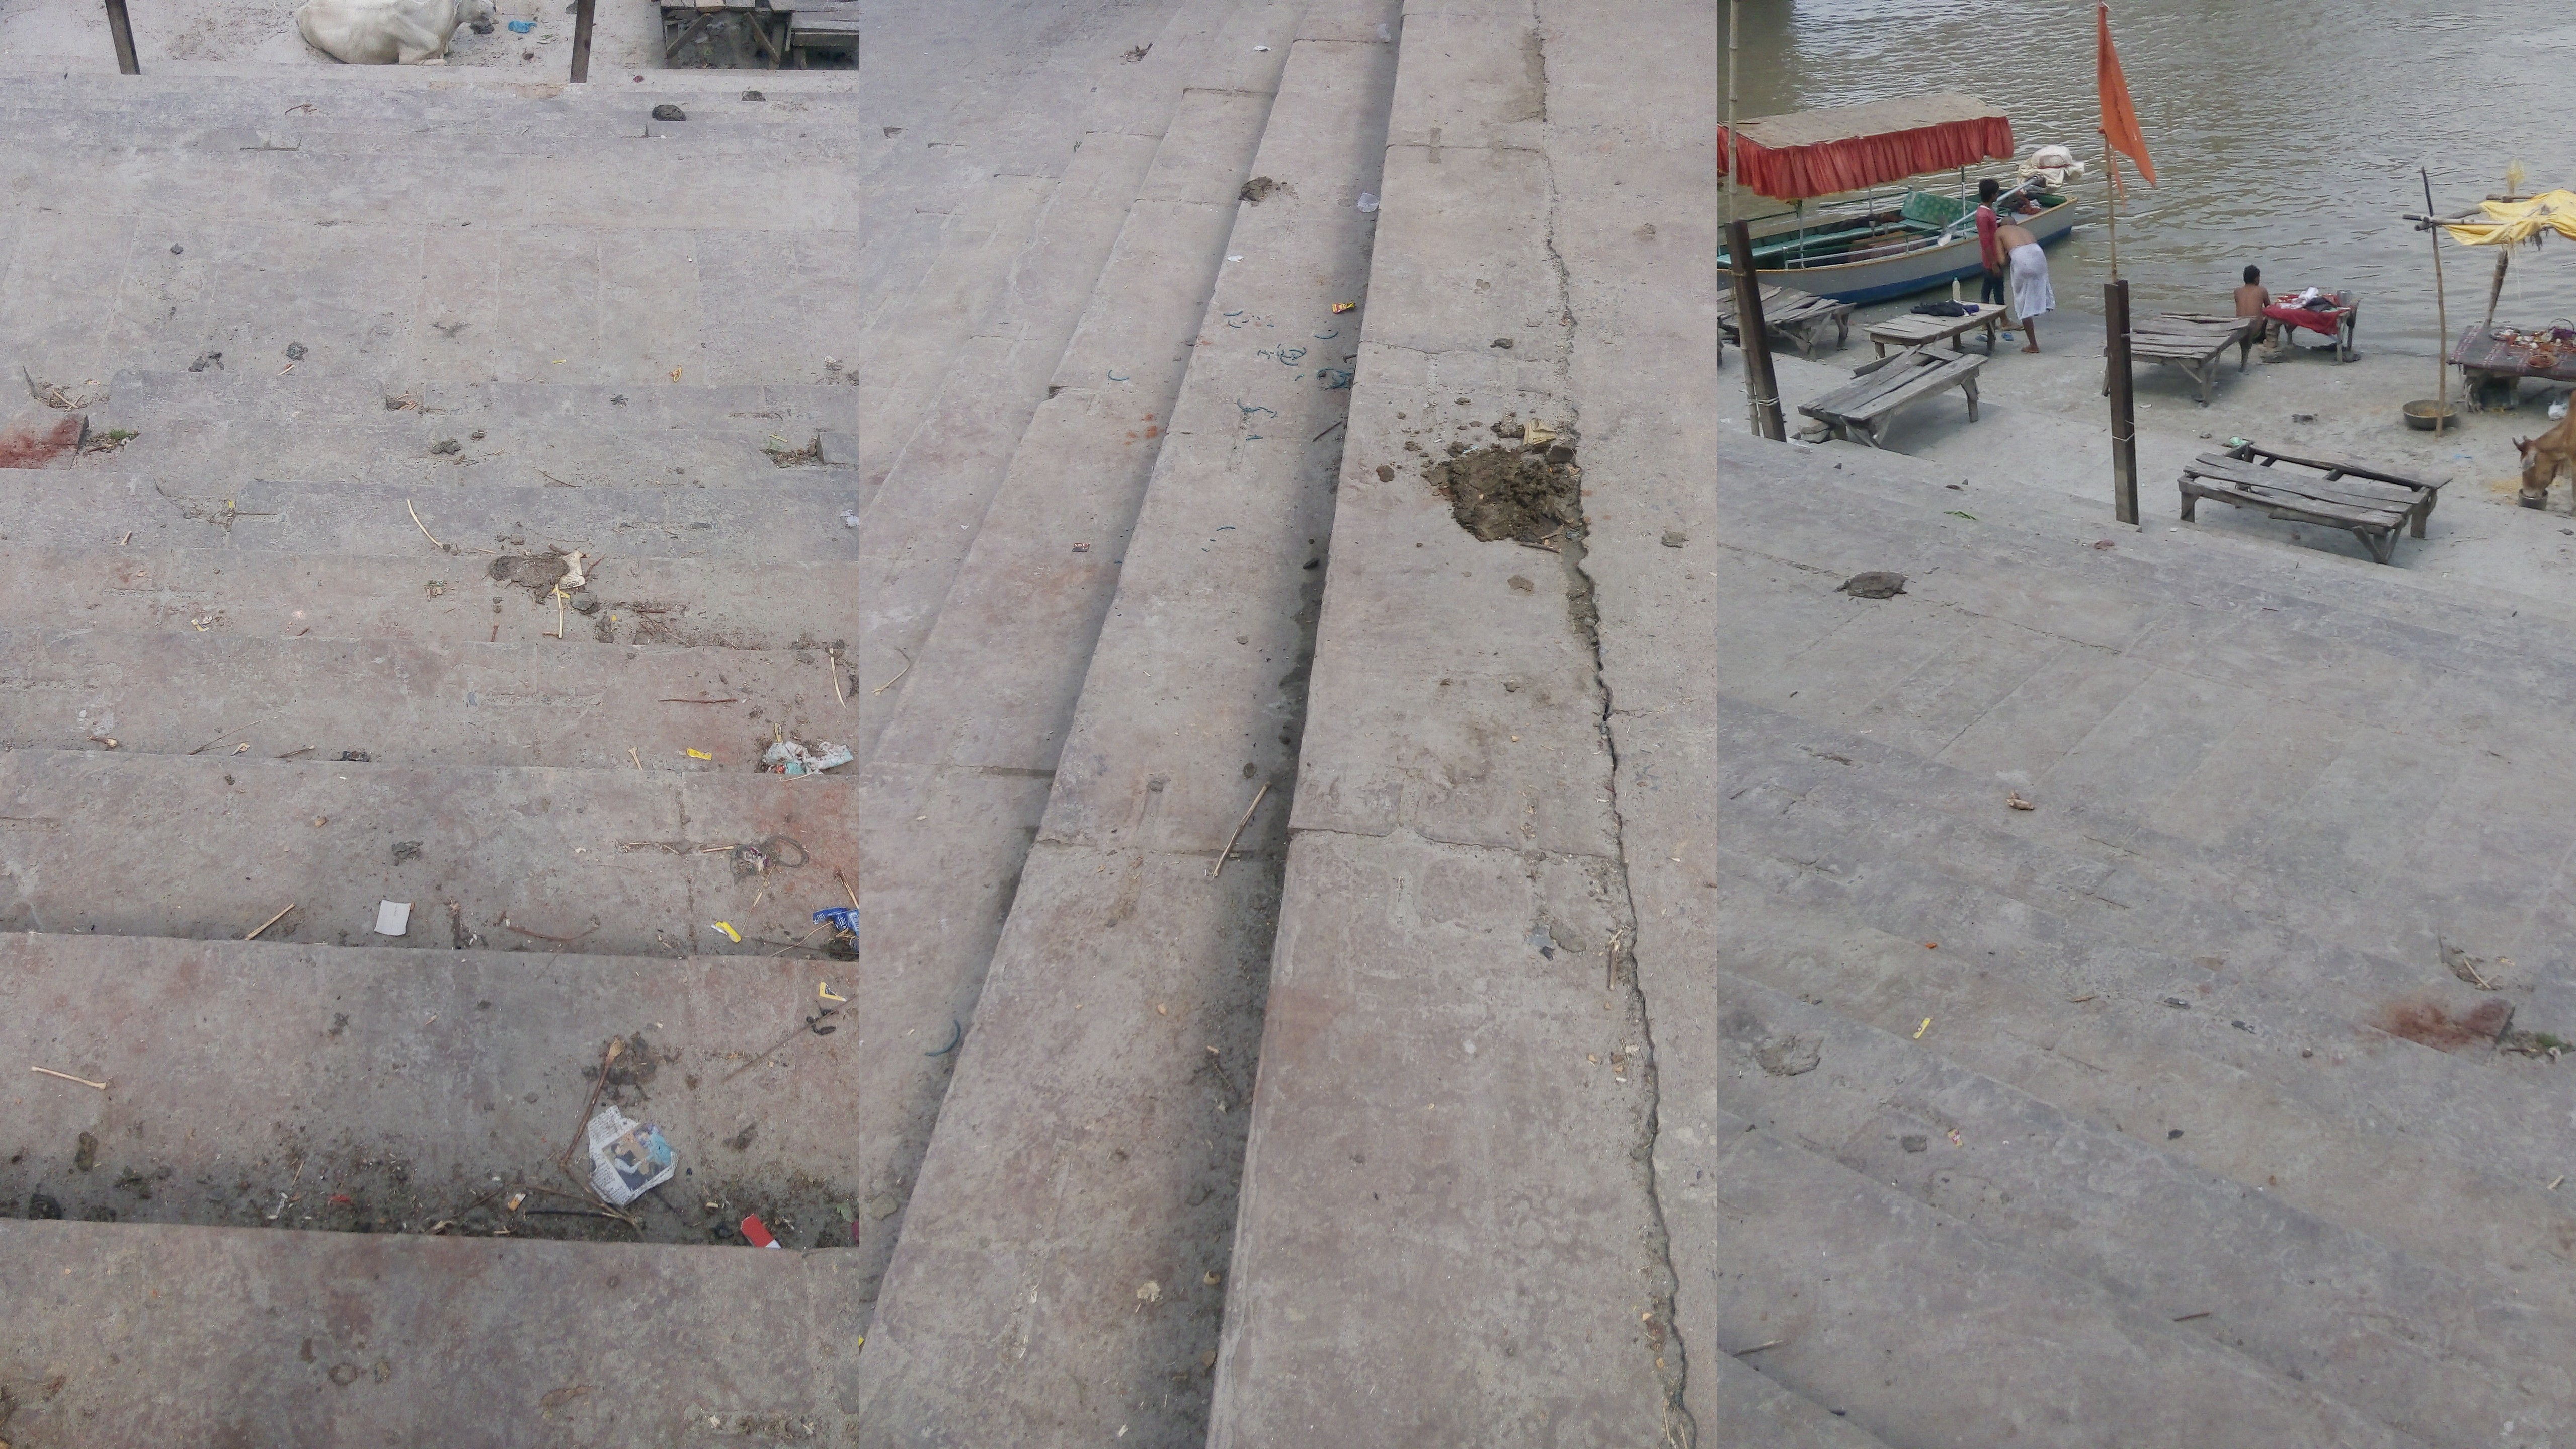 Disgusting state of Ghats(jetty).